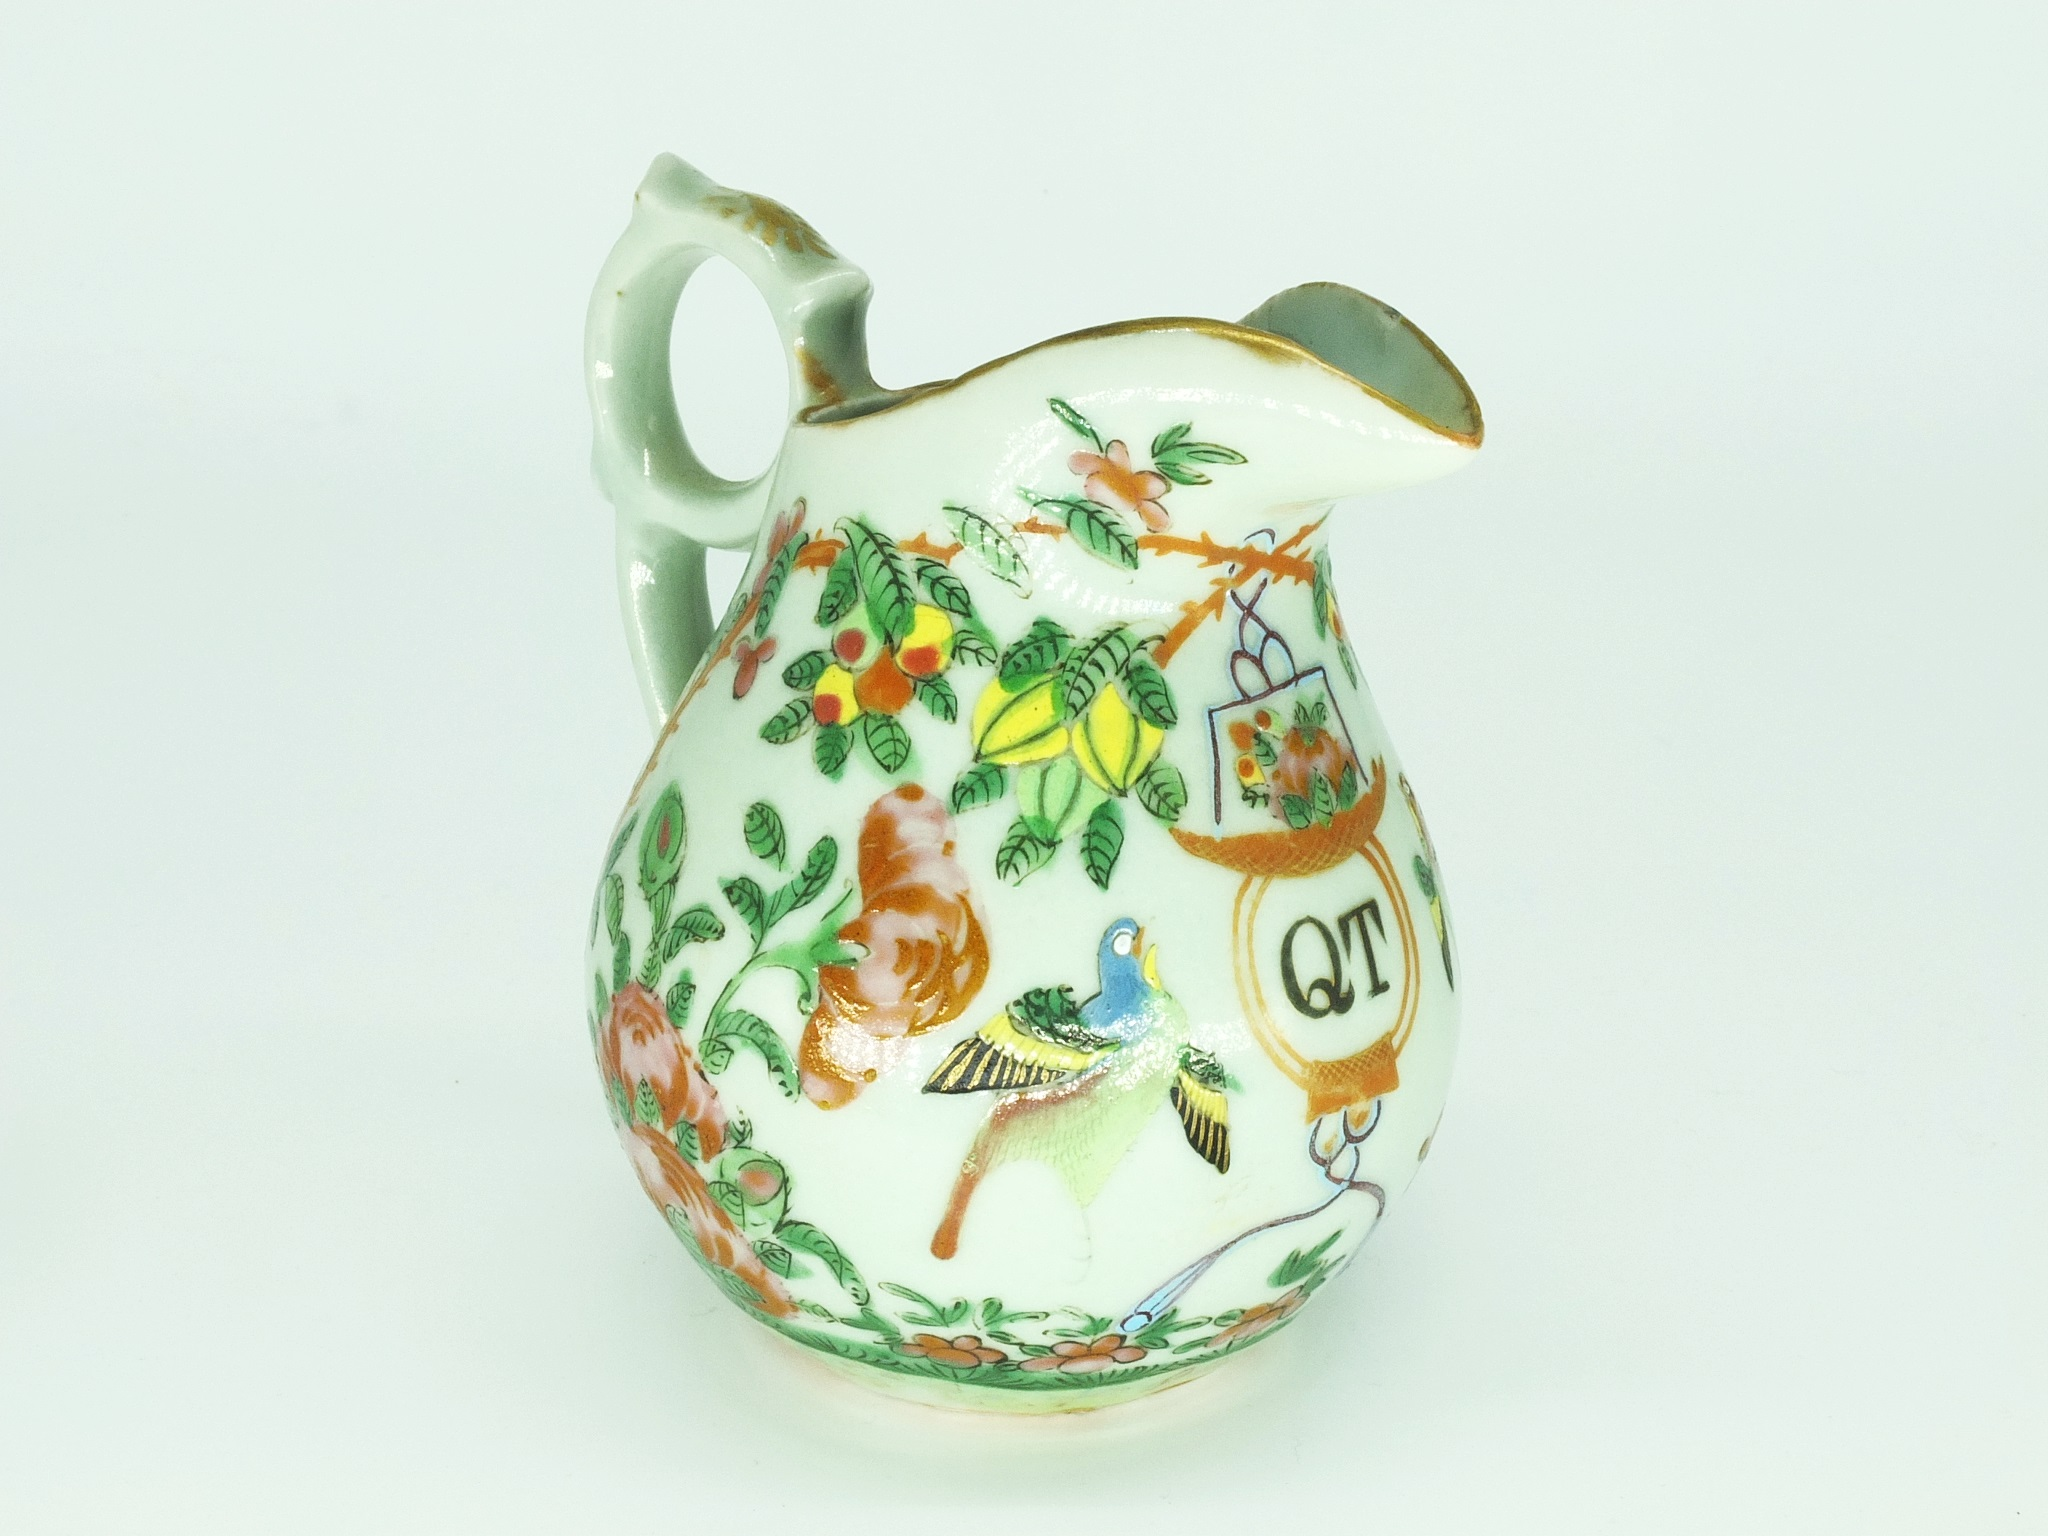 'Chinese Export Porcelain with QT Armorial of Late 19th Century Sydney Tea Rooms Owner Quong Tart'